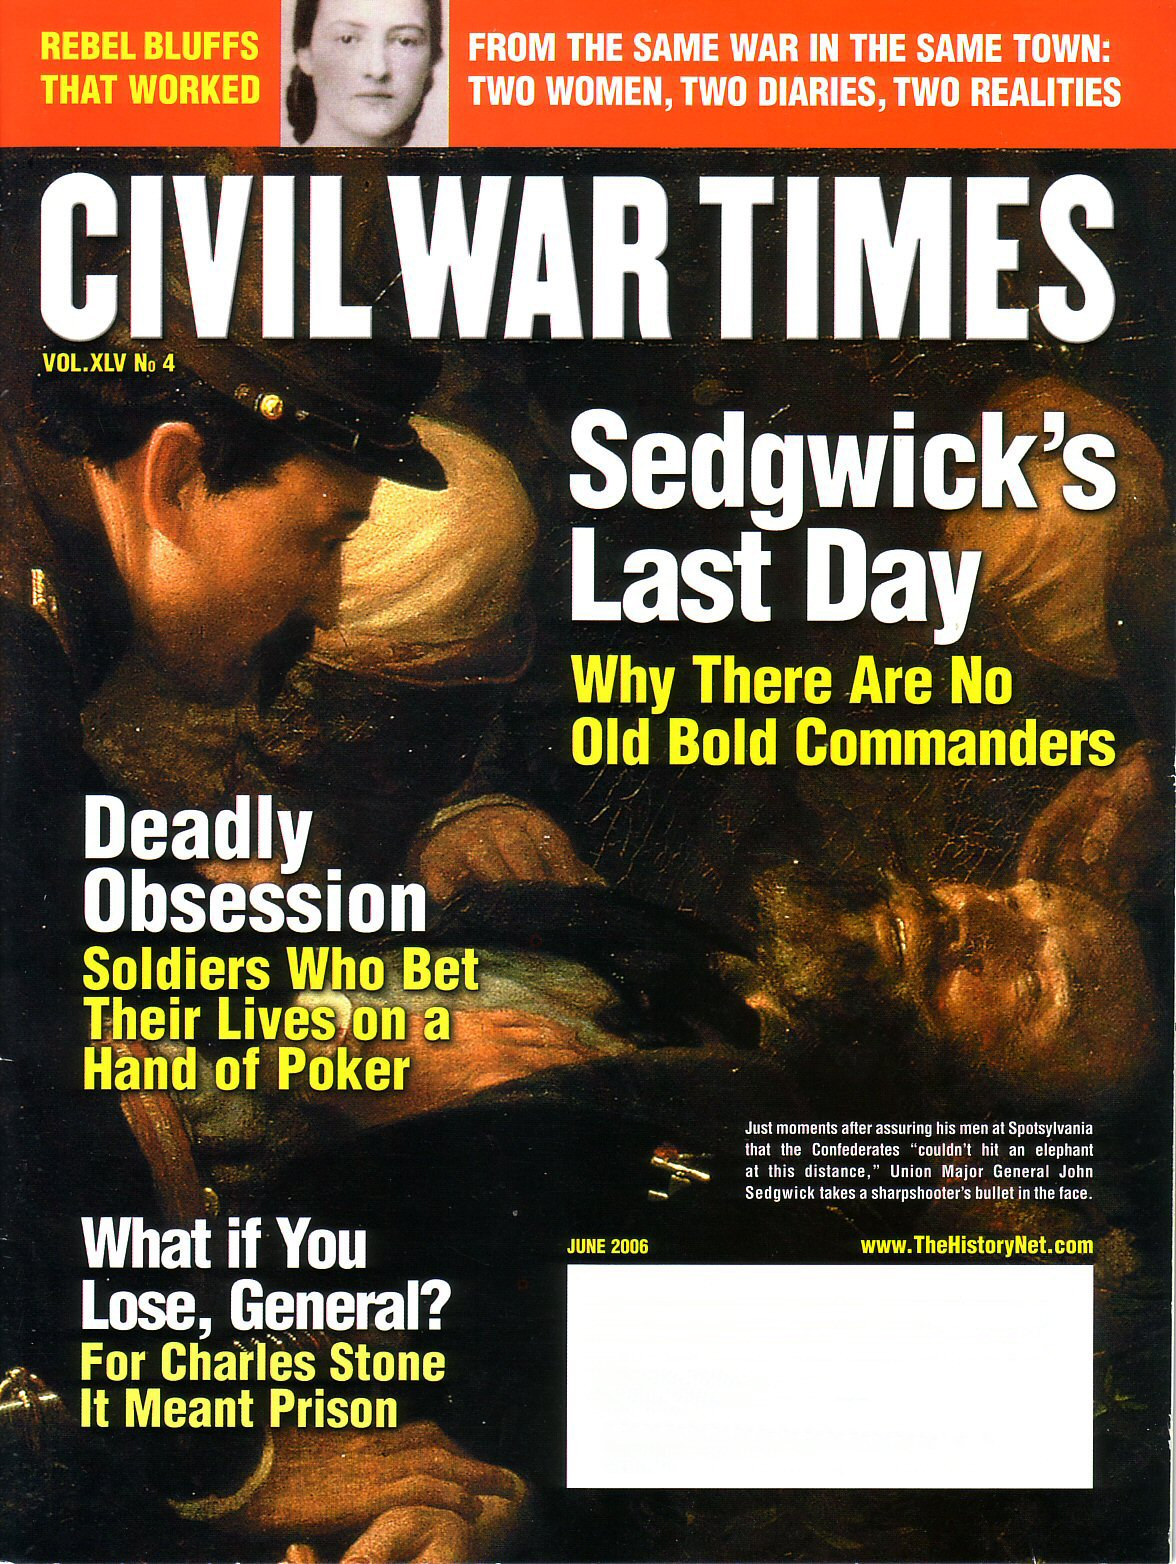 Civil war Times, Volume 45, Number 4 (June 2006)